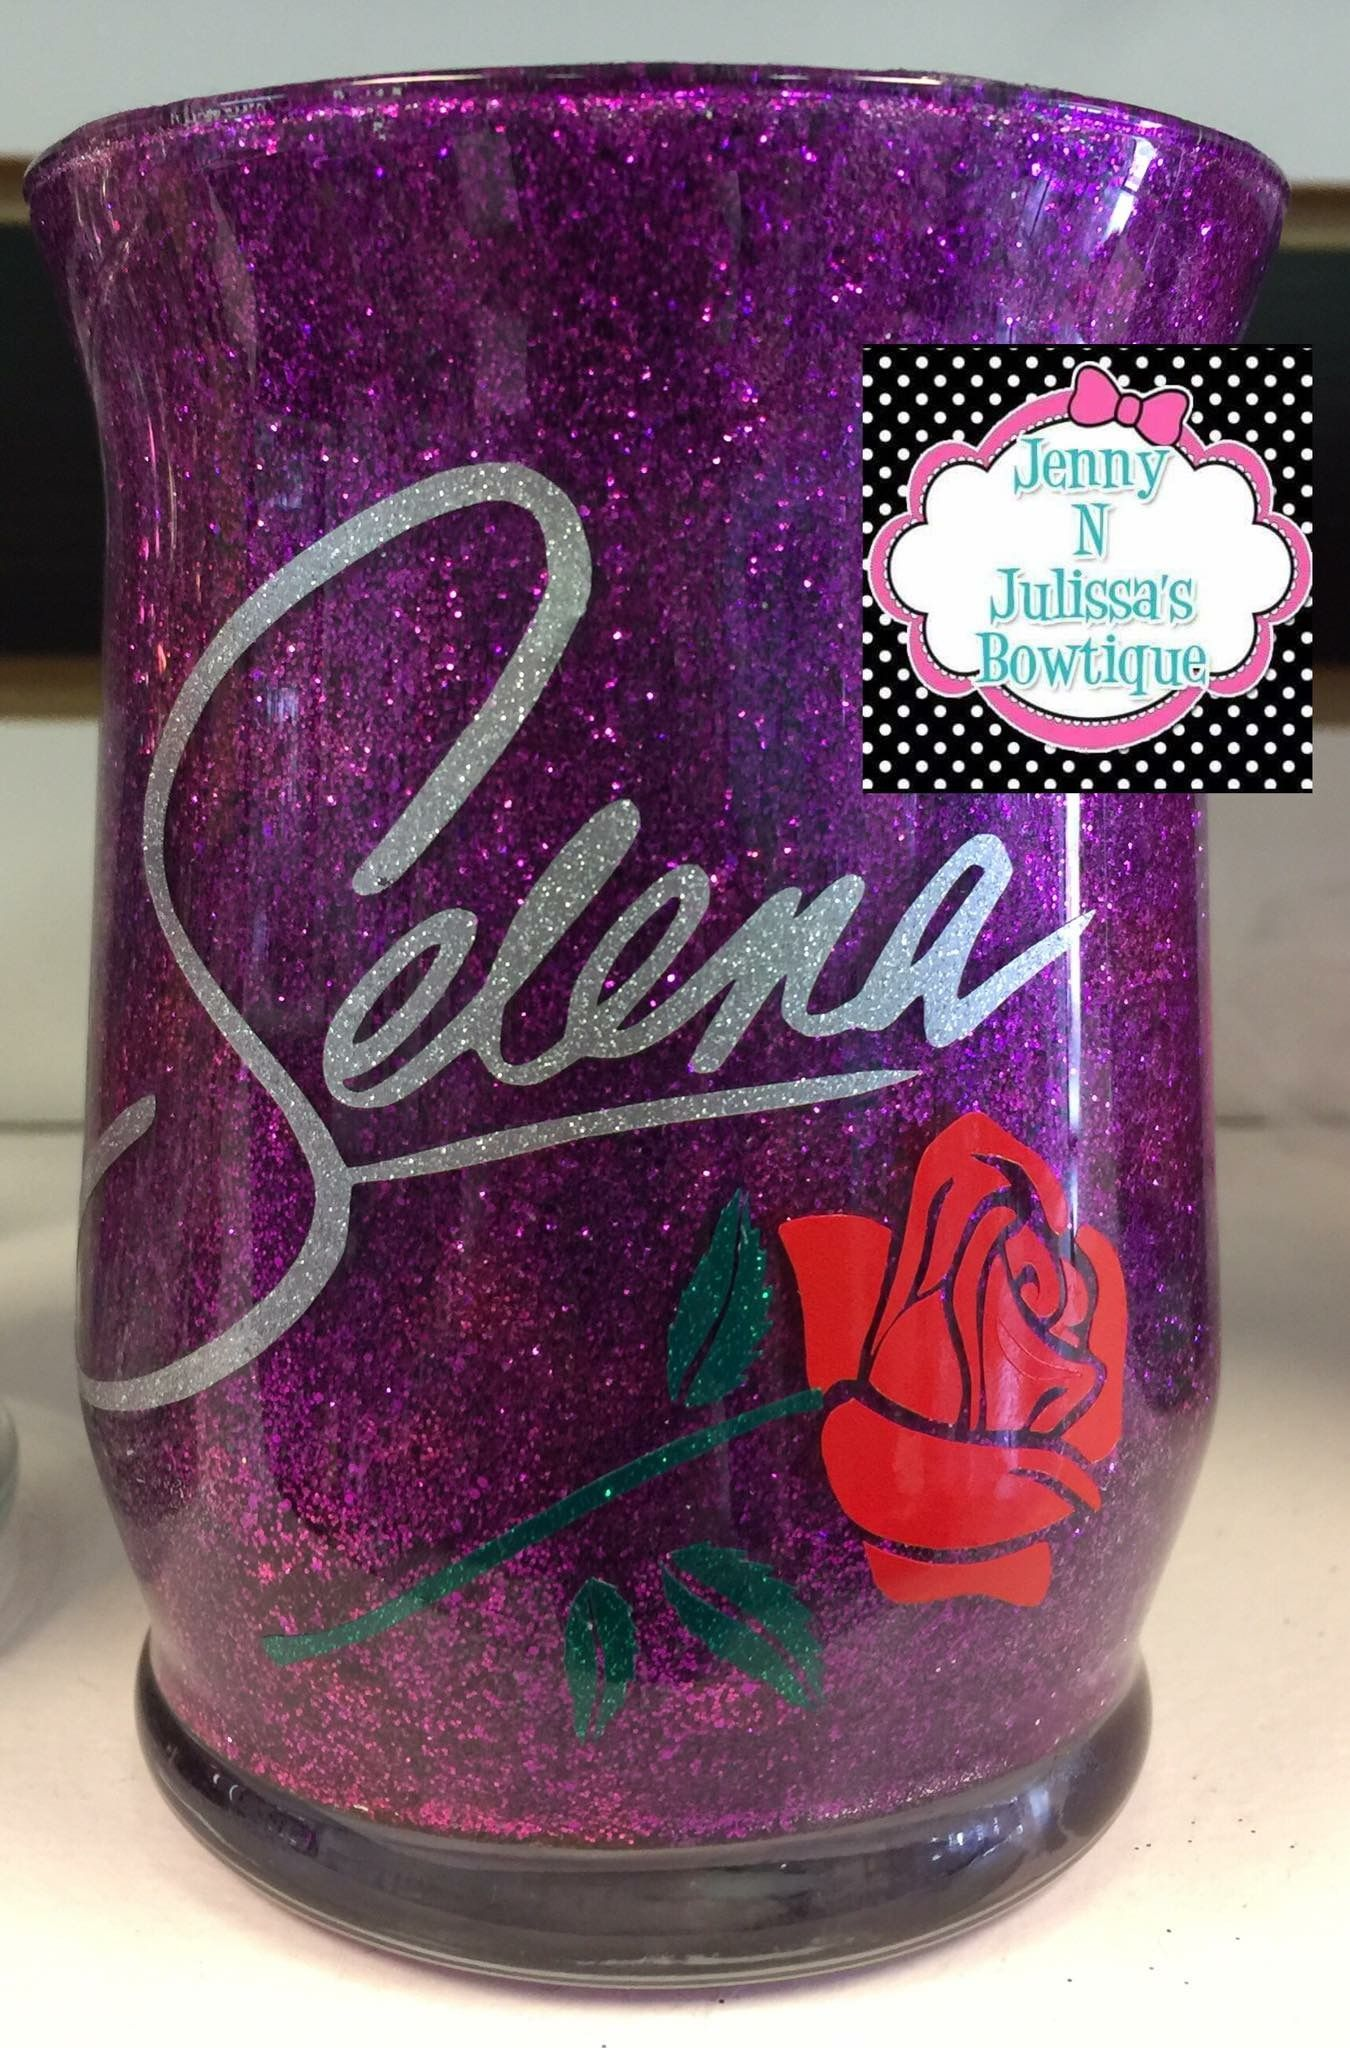 My daughter's purple glitter coated glass makeup cup! This